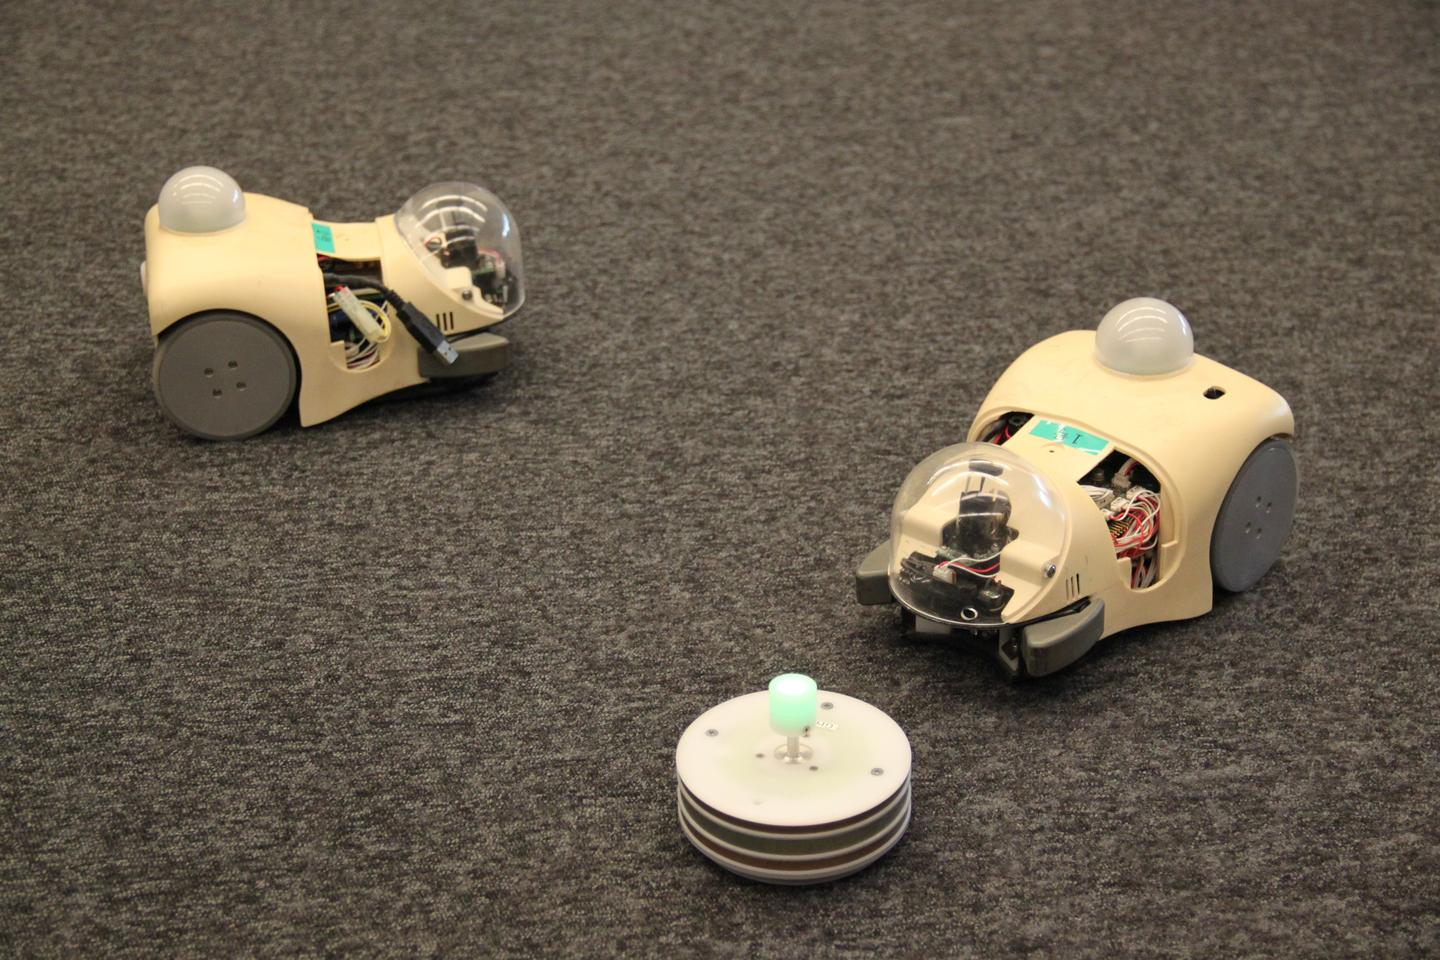 The study used robots known as Cyber Rodents to study mating behaviour over more than 1,000 generations (Photo: OIST)